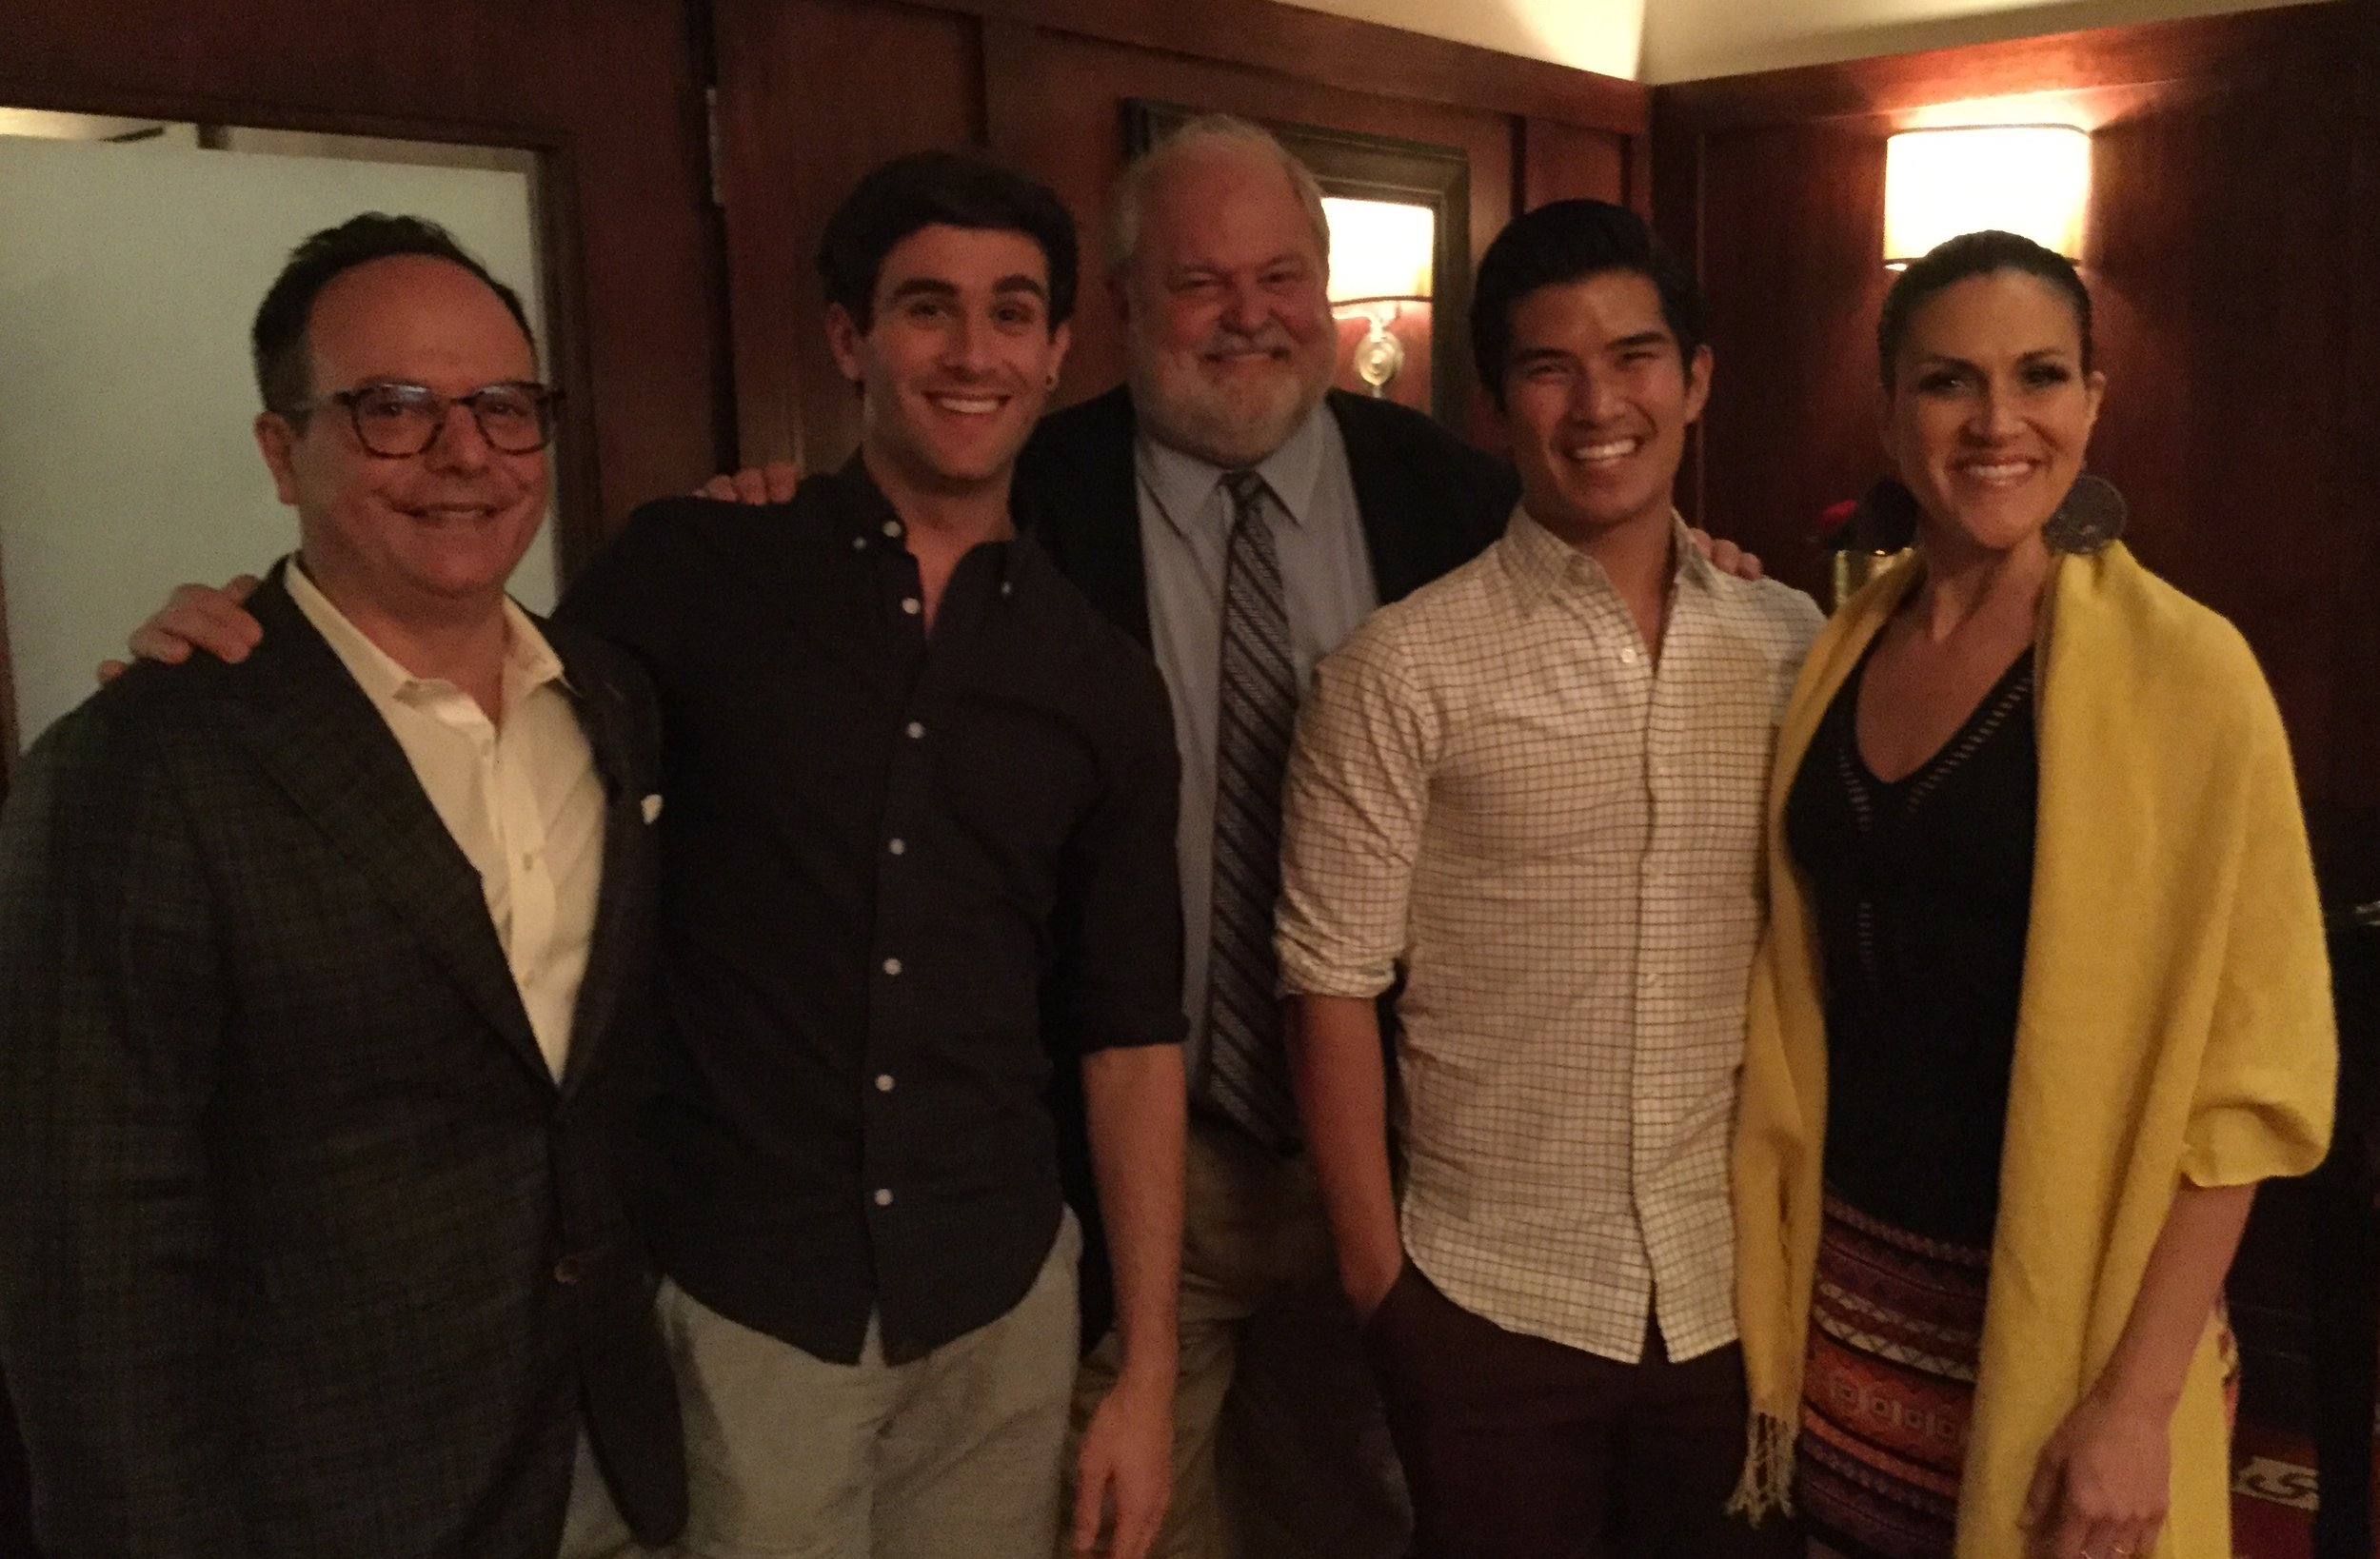 Vice President Marc Kaufman, Sam Lips, President Marty Balogh, Chris Vo and Aléna Watters join the cast for talkback at Petterino's before the show.